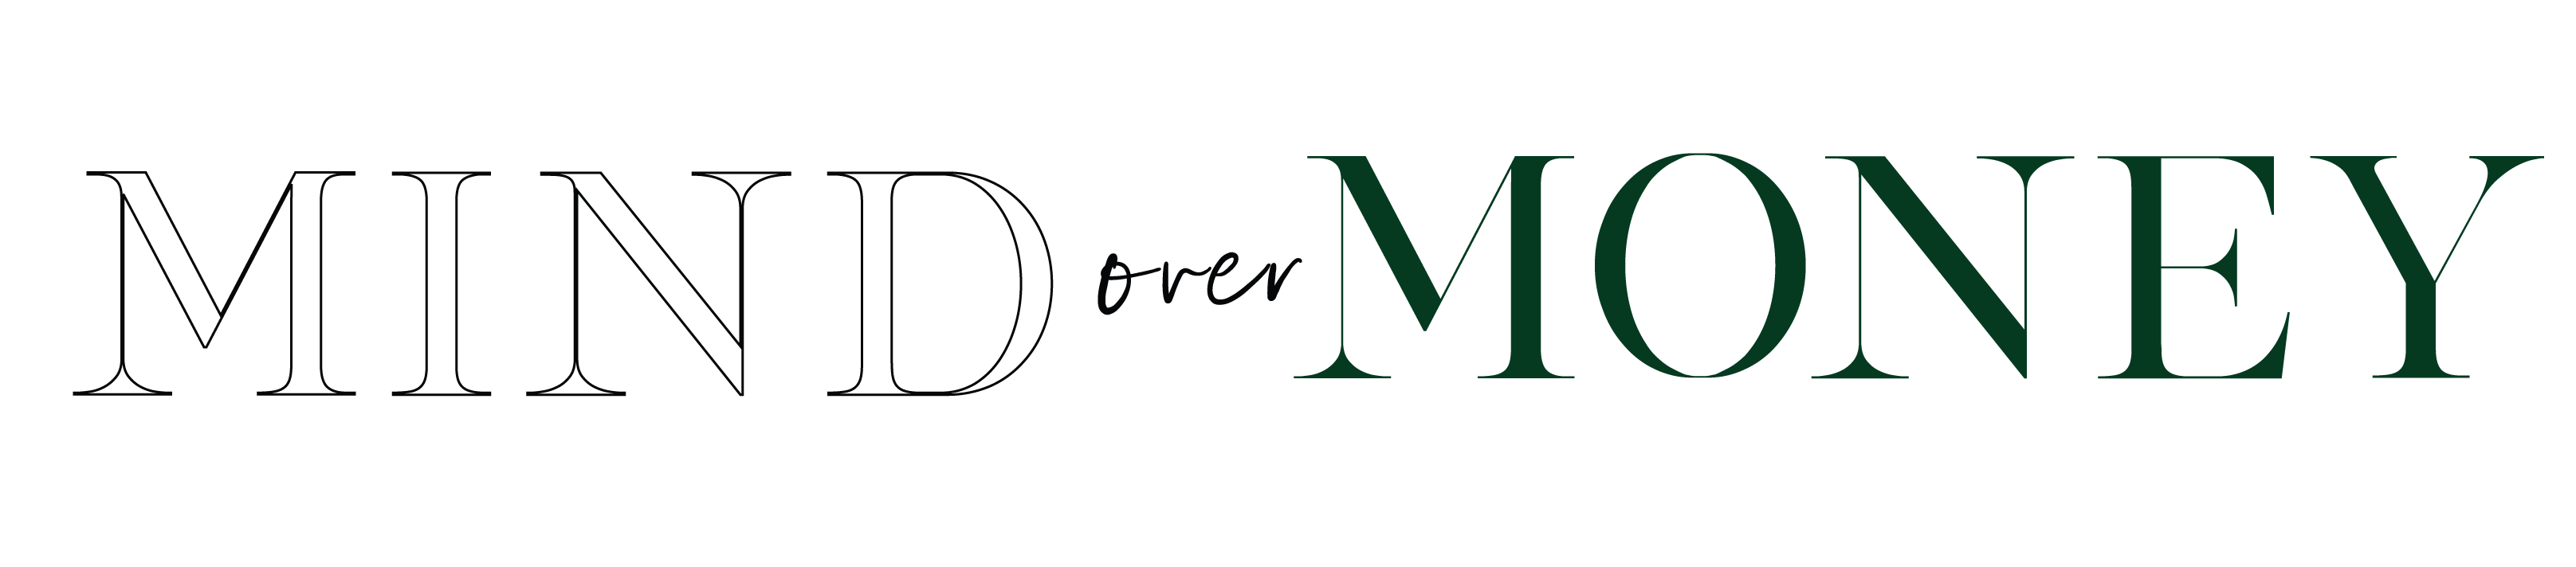 Mind Over Money vertical logo in black and green